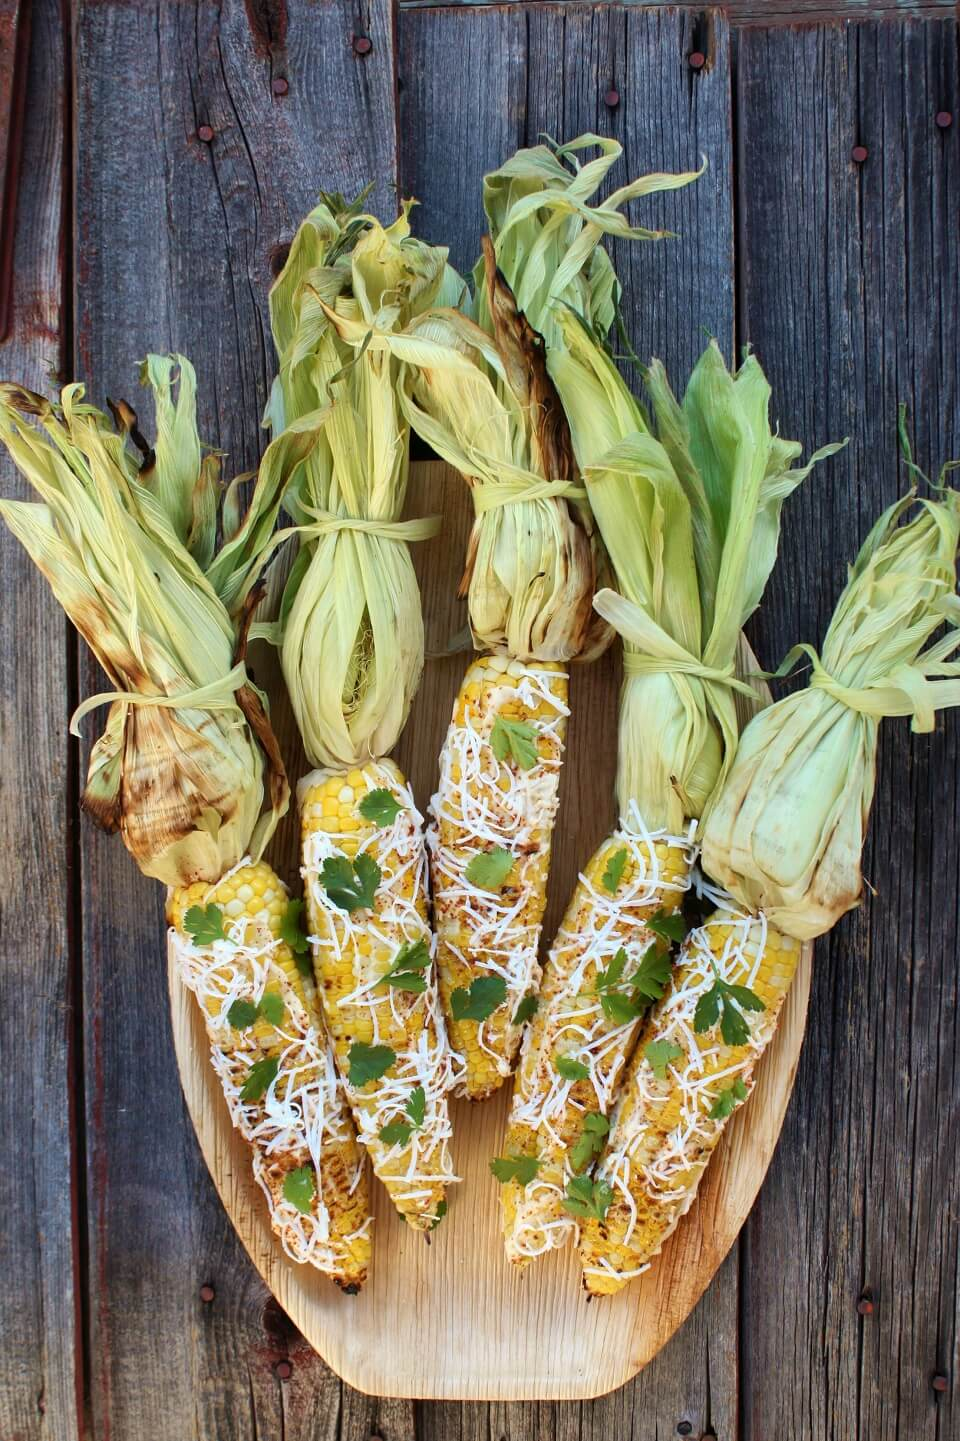 A wooden platter holding 5 yellow cobs of corn covered with mayonnaise and sprinkled with cheese, spices, and cilantro.